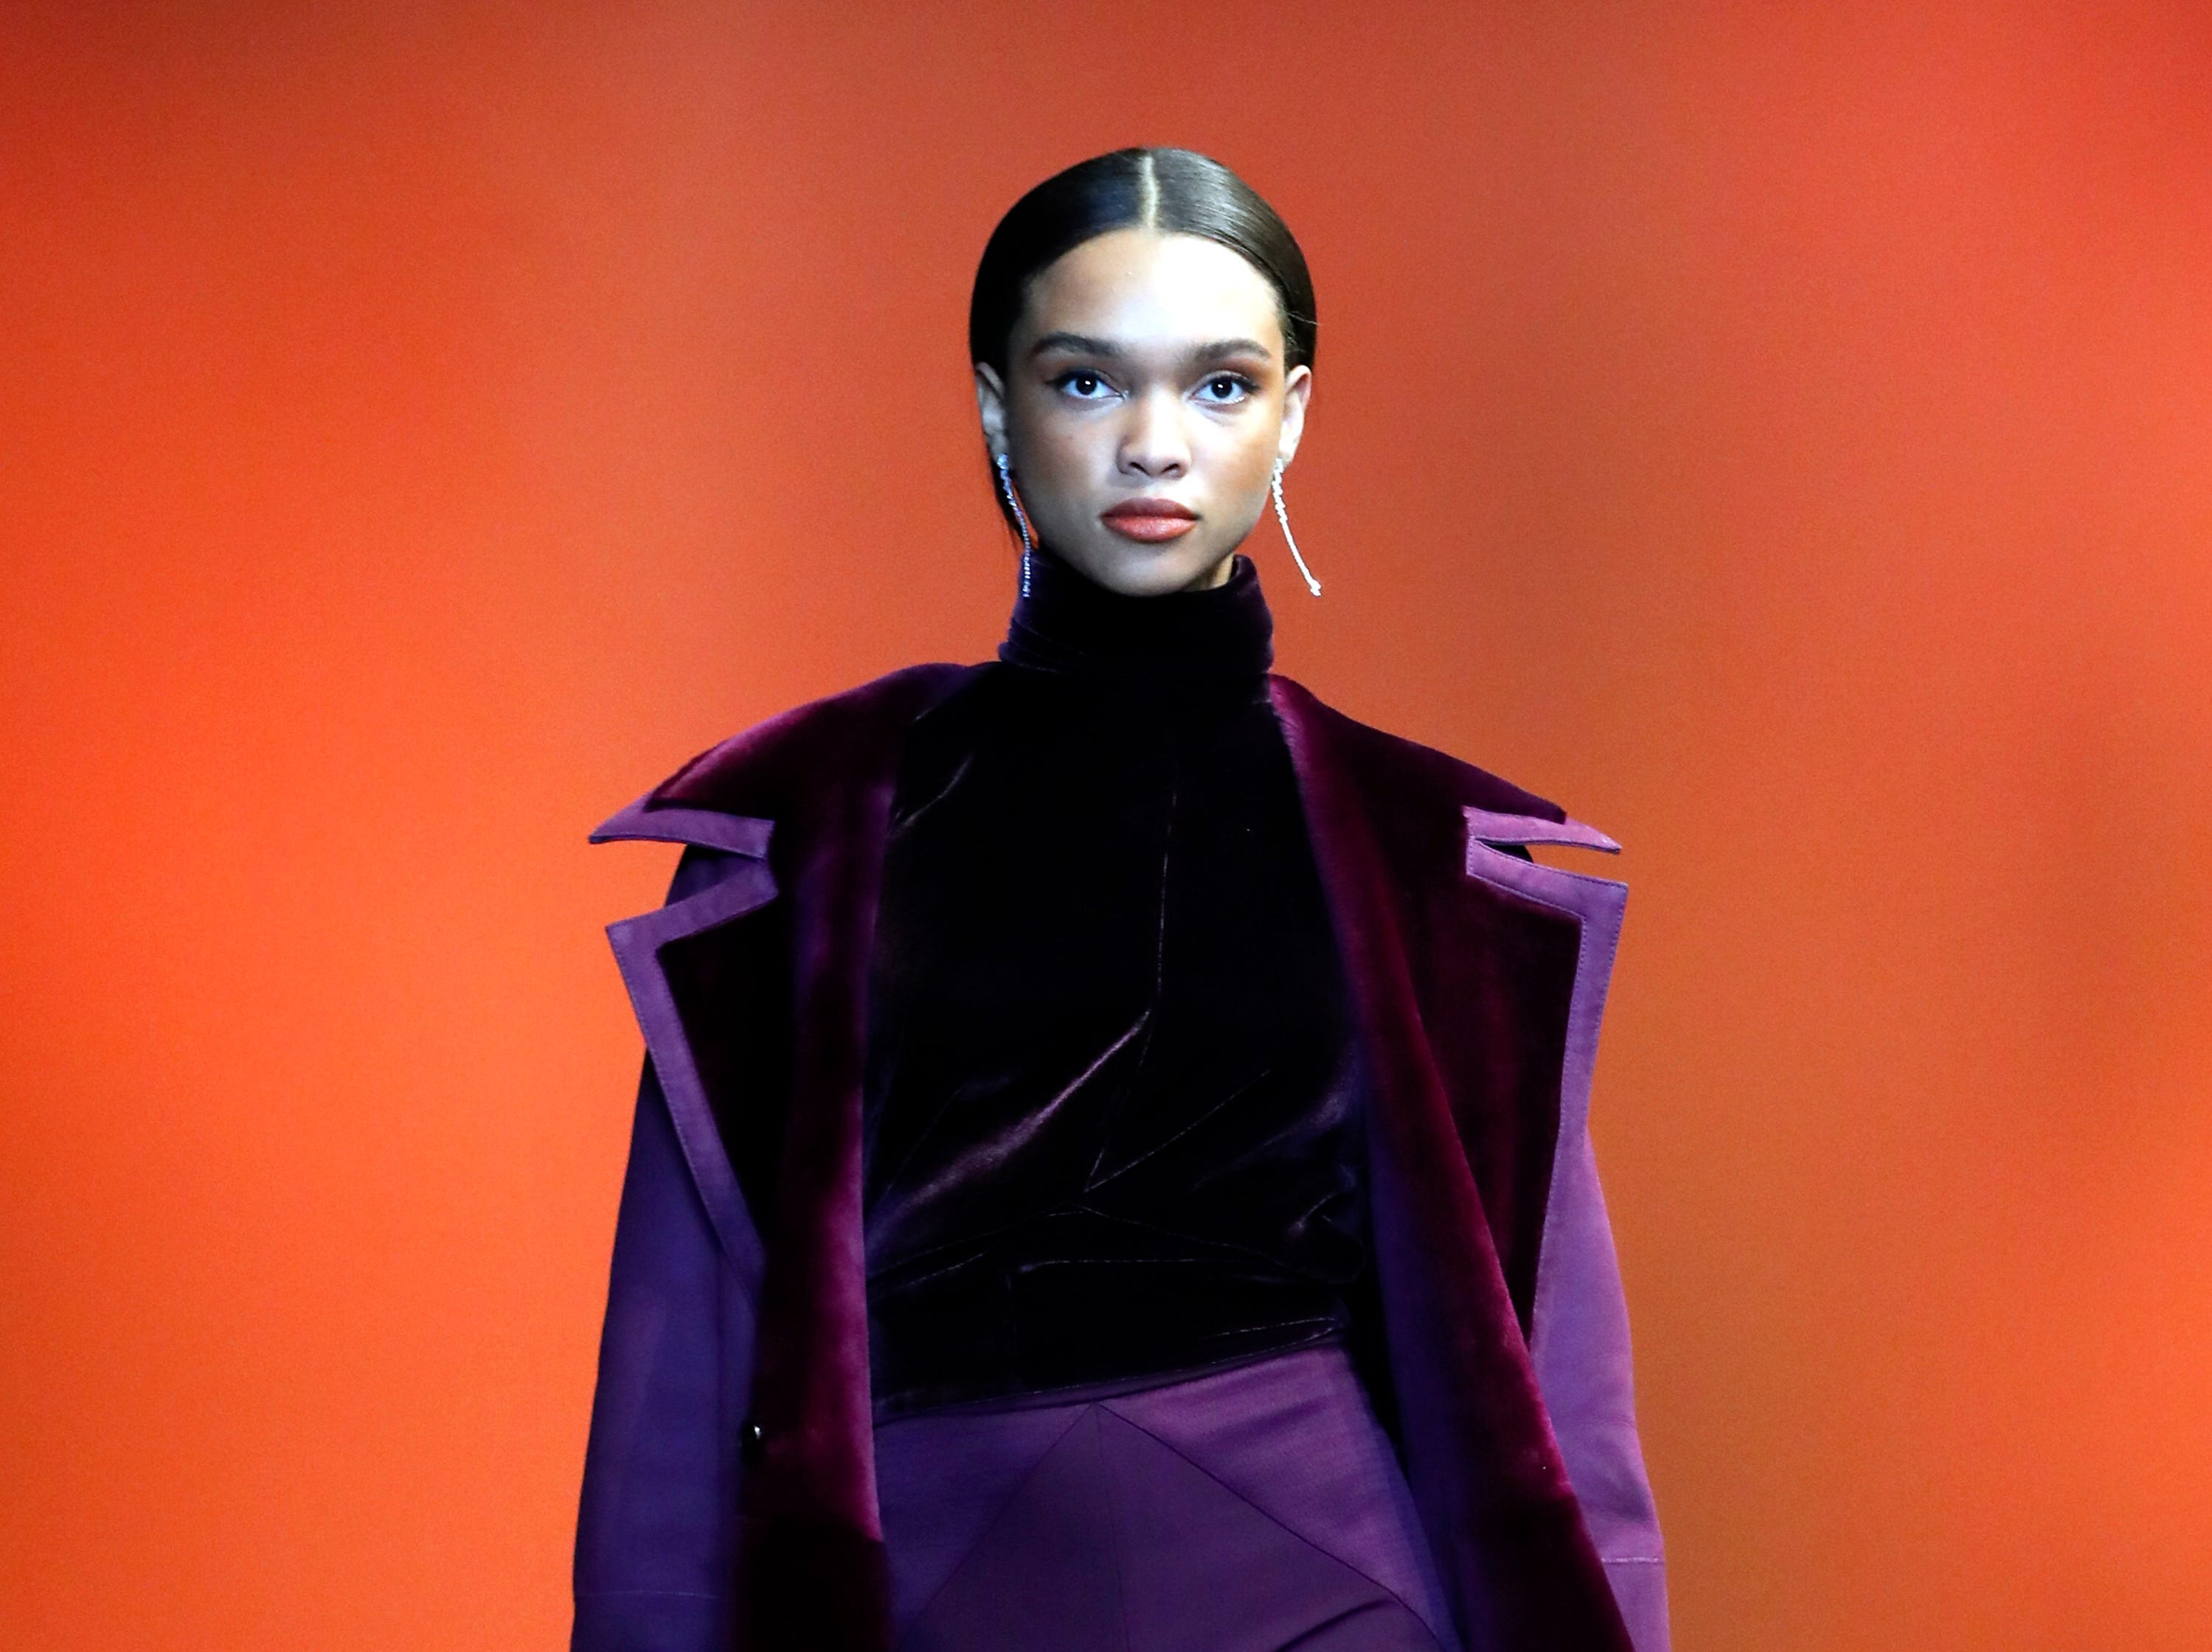 epa07353949 A model presents a creation by US designer Carly Cushnie for her label Cushnie during the New York Fashion Week, in New York, New York, 08 February 2019. The Fall-Winter 2019/20 collections are presented from 06 to 13 February.  EPA-EFE/JASON SZENES ORG XMIT: JSX01